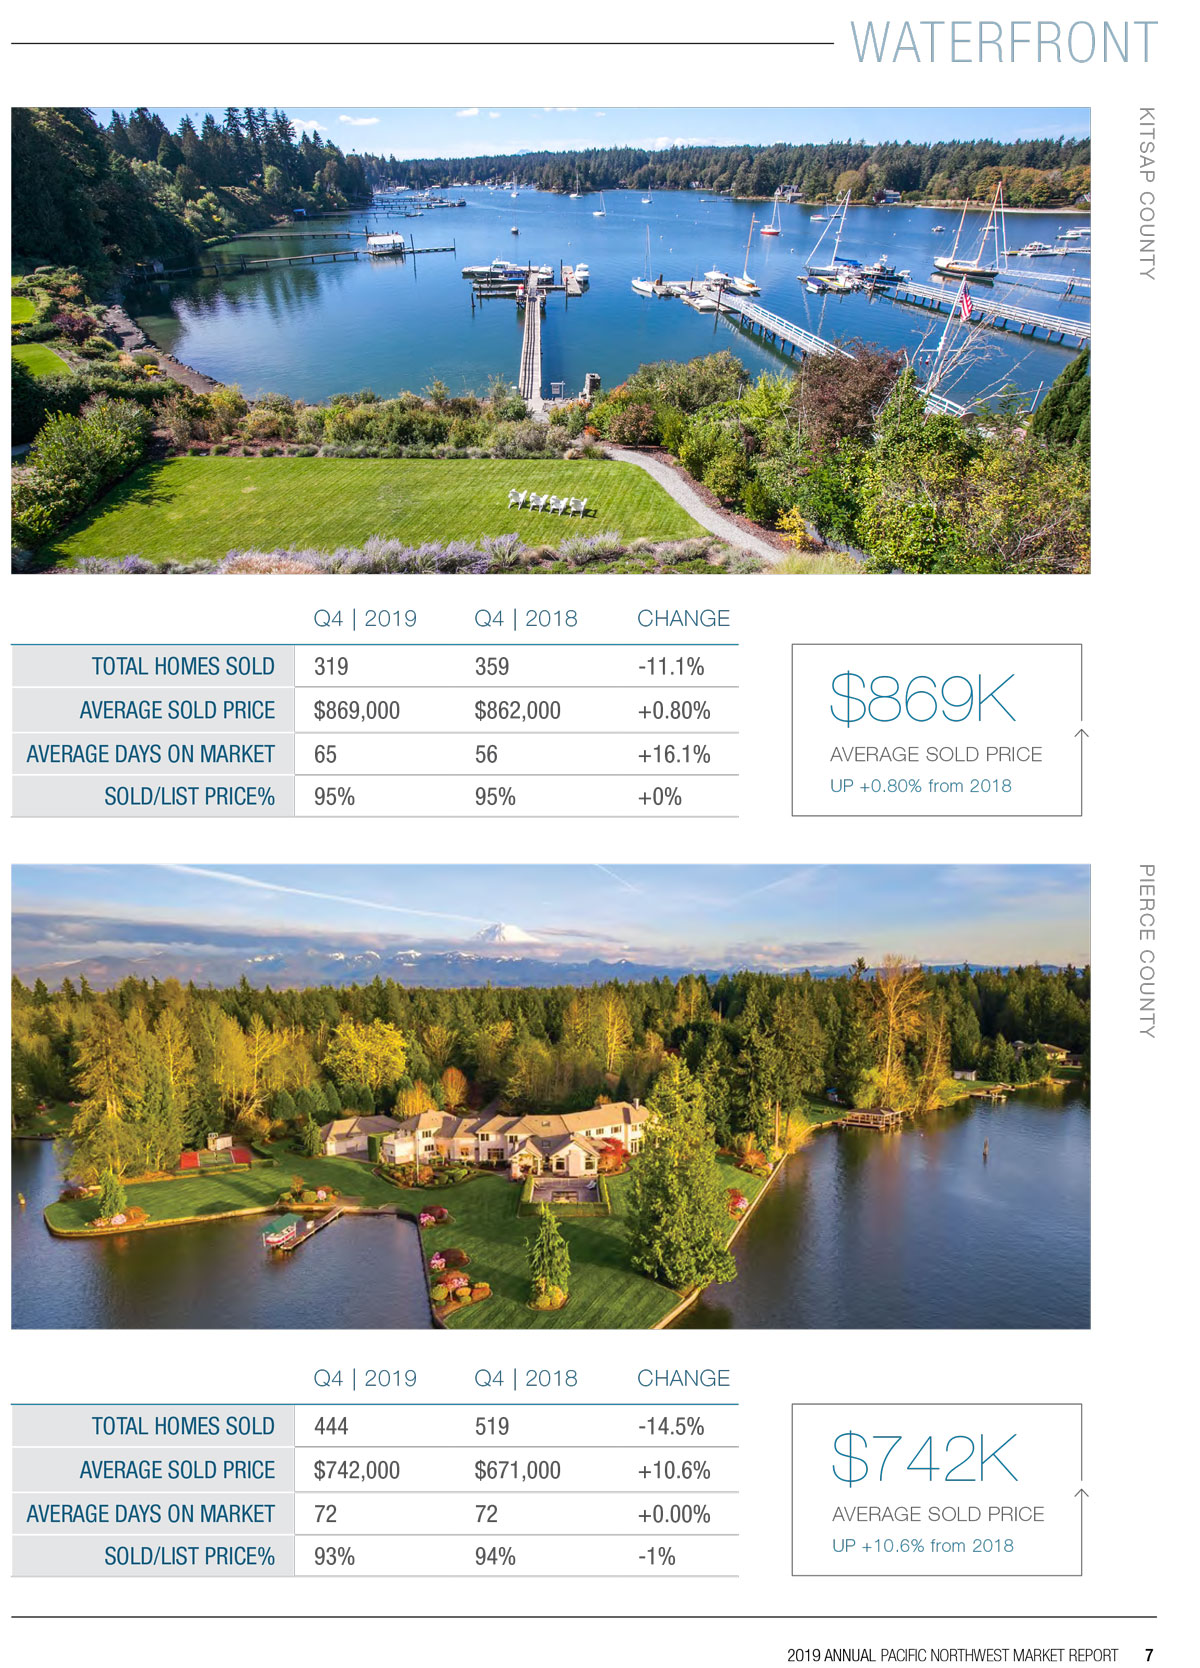 2019 Waterfront Market Report Page 3